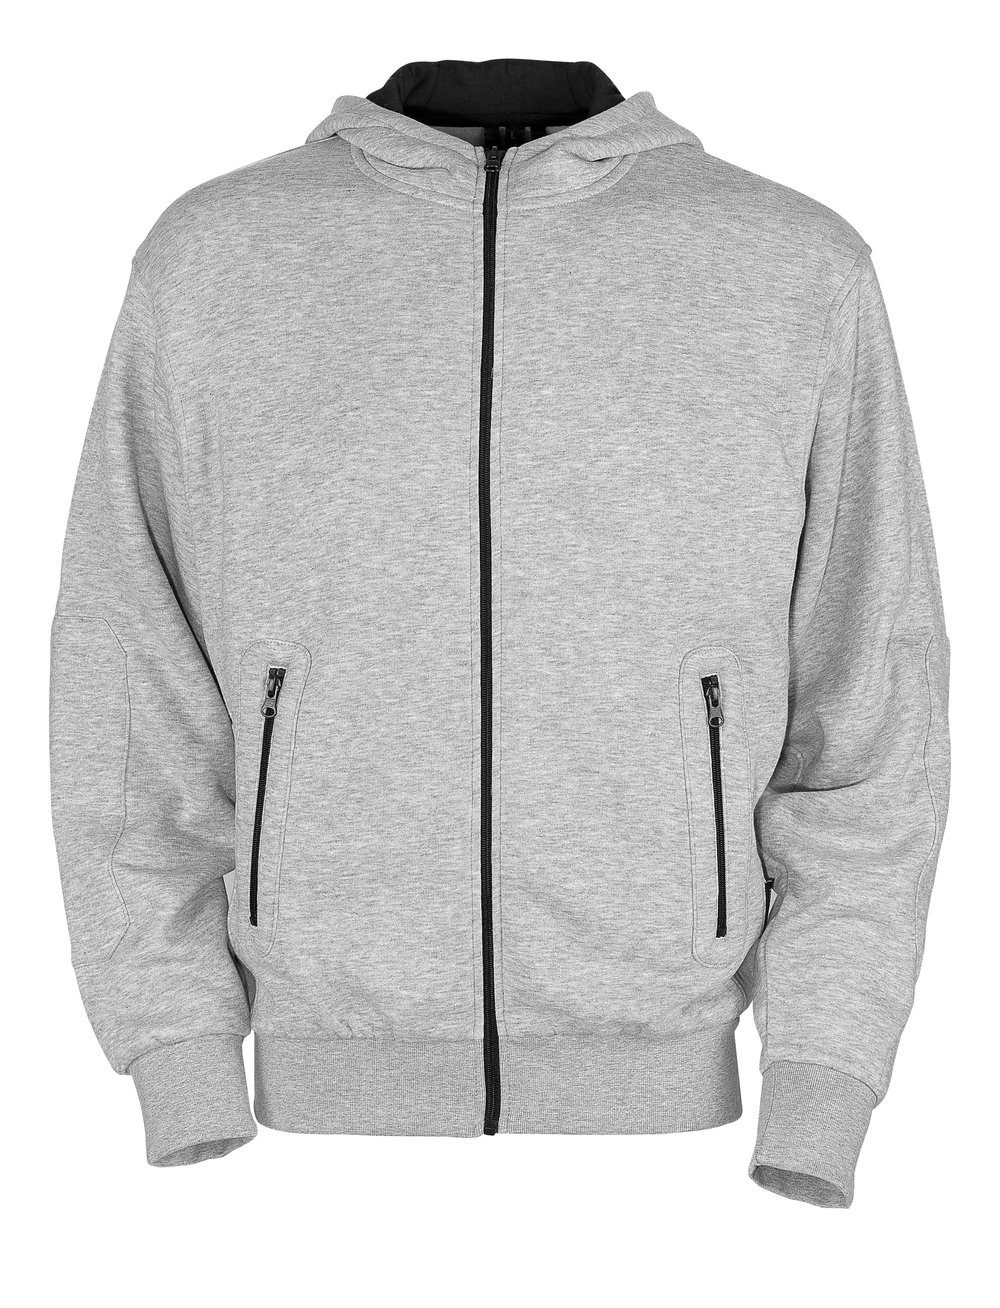 50423-191-08 Hoodie with zipper - grey-flecked